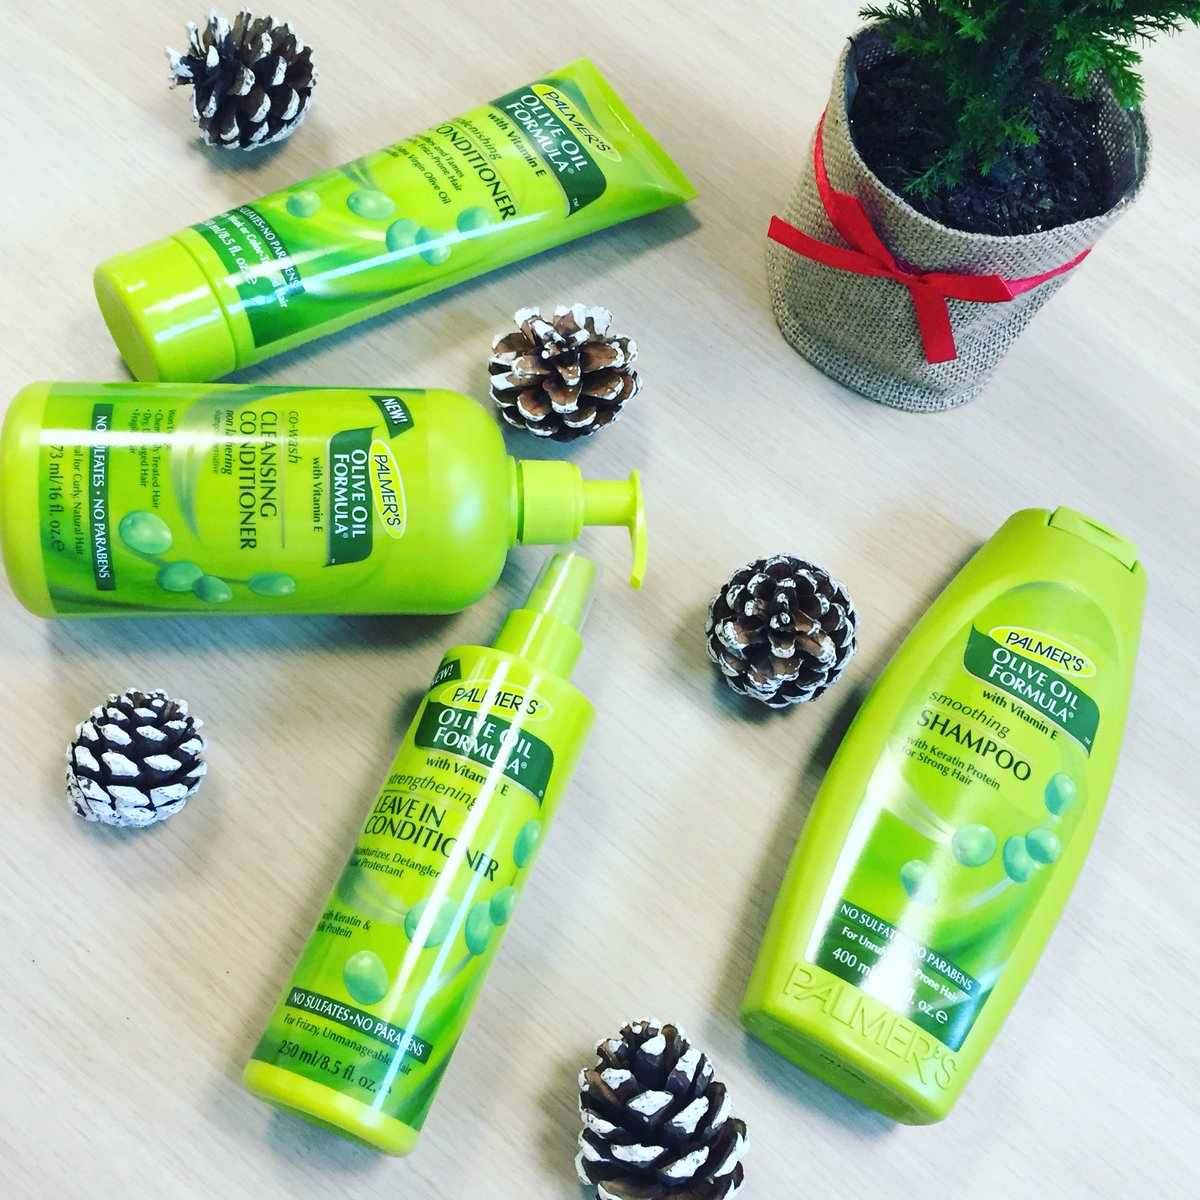 On the 1st Day of #PalmersFeeling Giveaways enter to win an Olive Oil Hair Set https://t.co/D4uctkGG8v. Ts&Cs apply. https://t.co/HXjrE9prI9